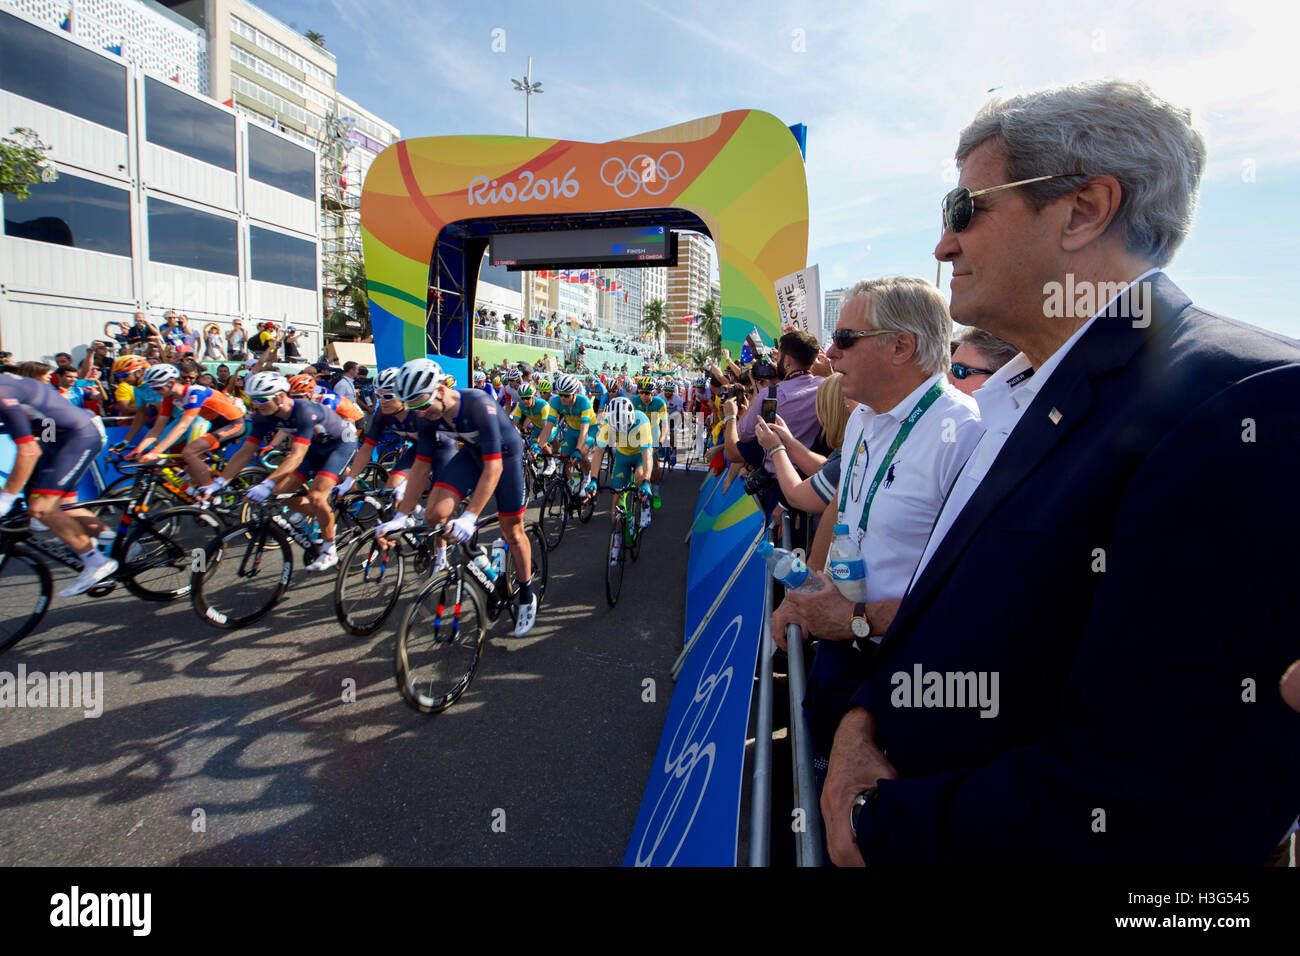 U.S. Secretary of State John Kerry watches the start of the Olympic men's cycling race along the Copacobana beach in Rio de Janiero, Brazil, as he and his fellow members of the U.S. Presidential Delegation attend the Summer Olympics on August 6, 2016. Stock Photo